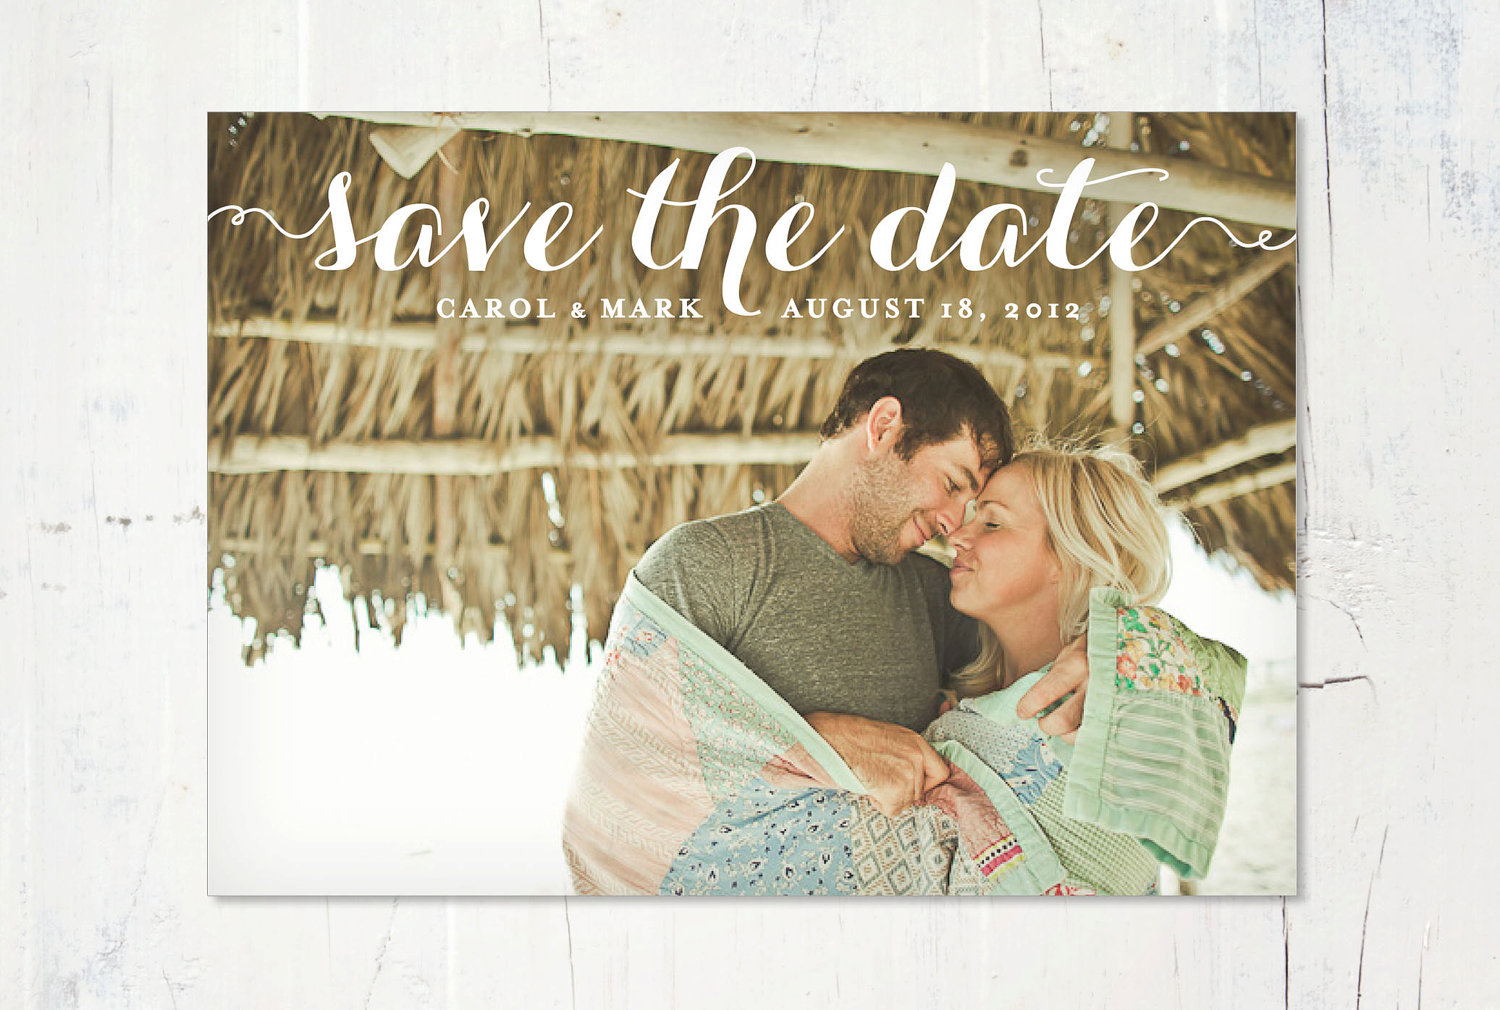 ... Save The Date / Save-The-Date Wedding Invitation Card Template